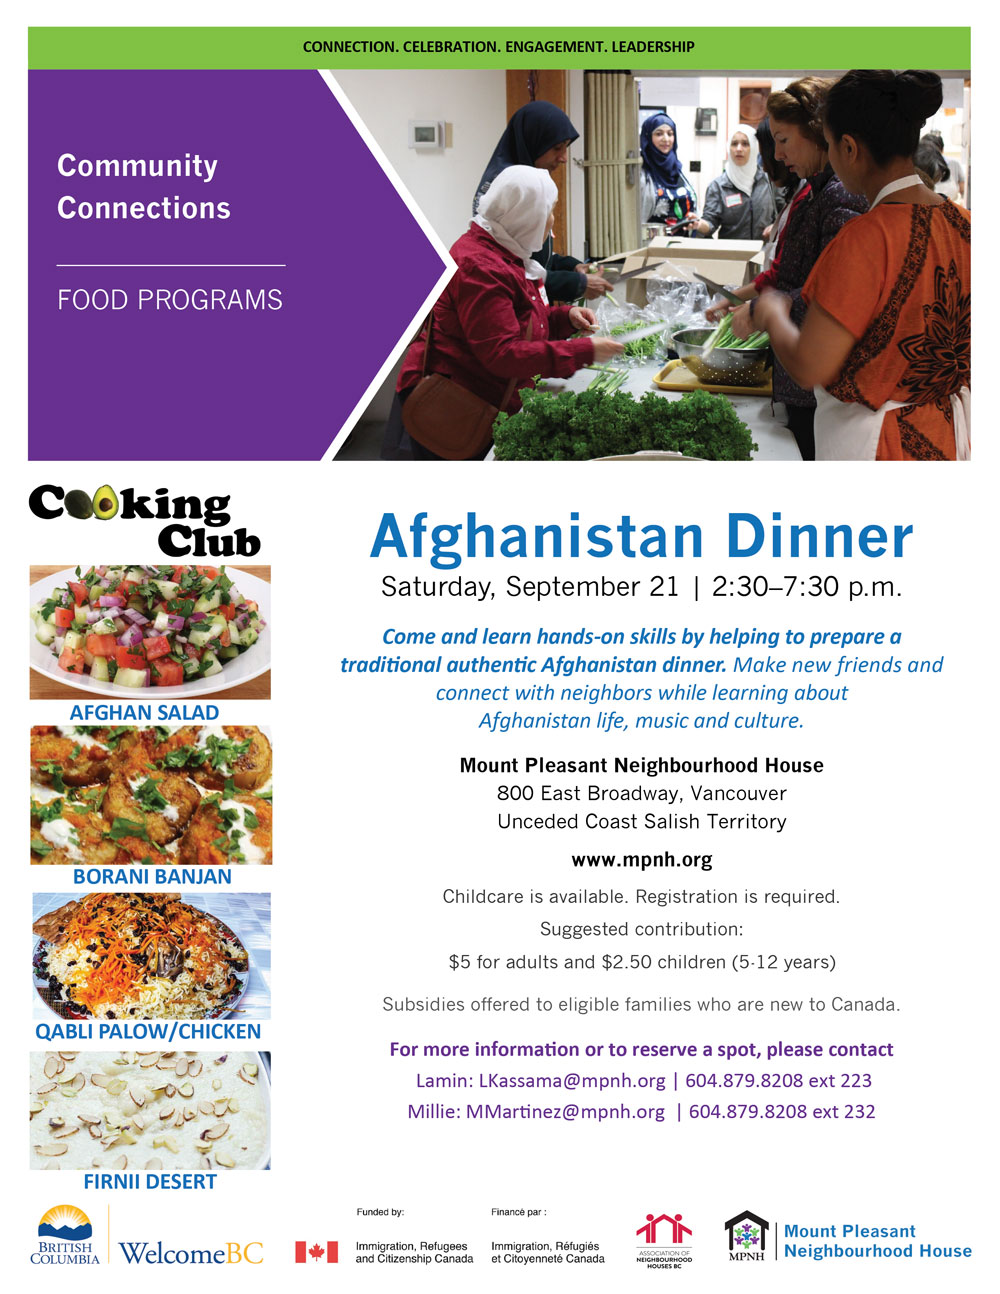 An image of the poster with event details, featuring a group of people from different backgrounds chopping vegetables together.